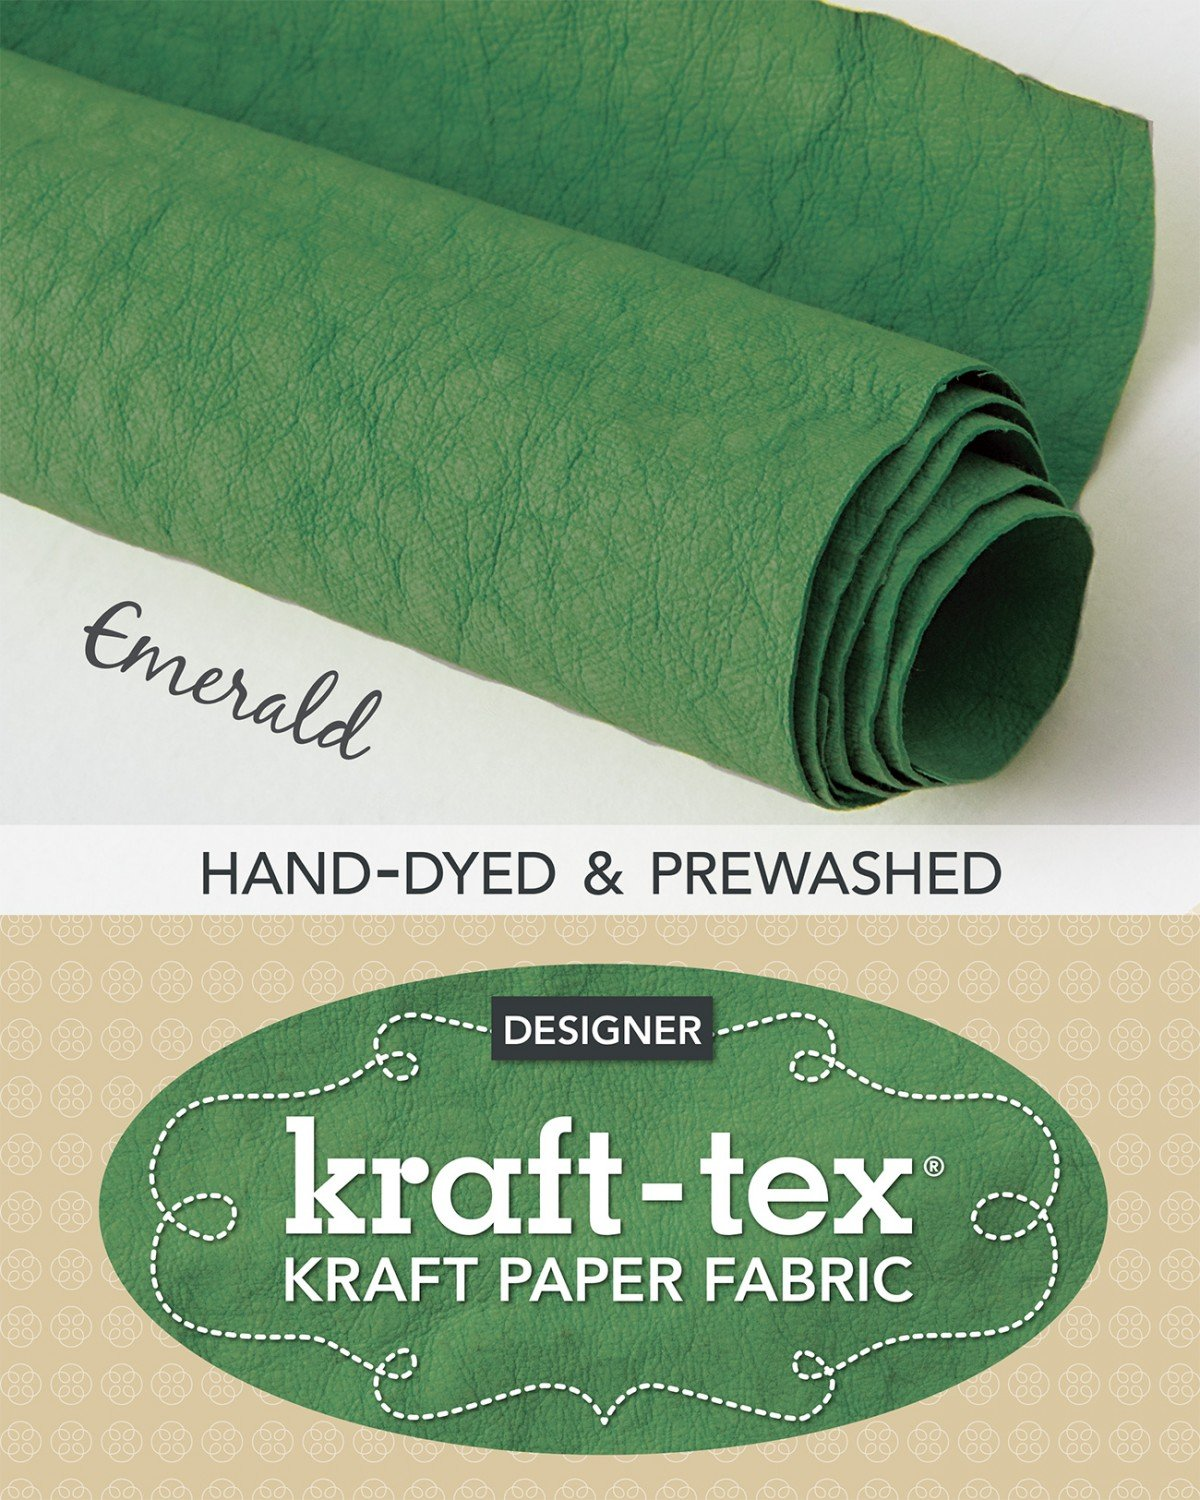 Kraft-tex Roll Emerald Hand-Dyed & Prewashed